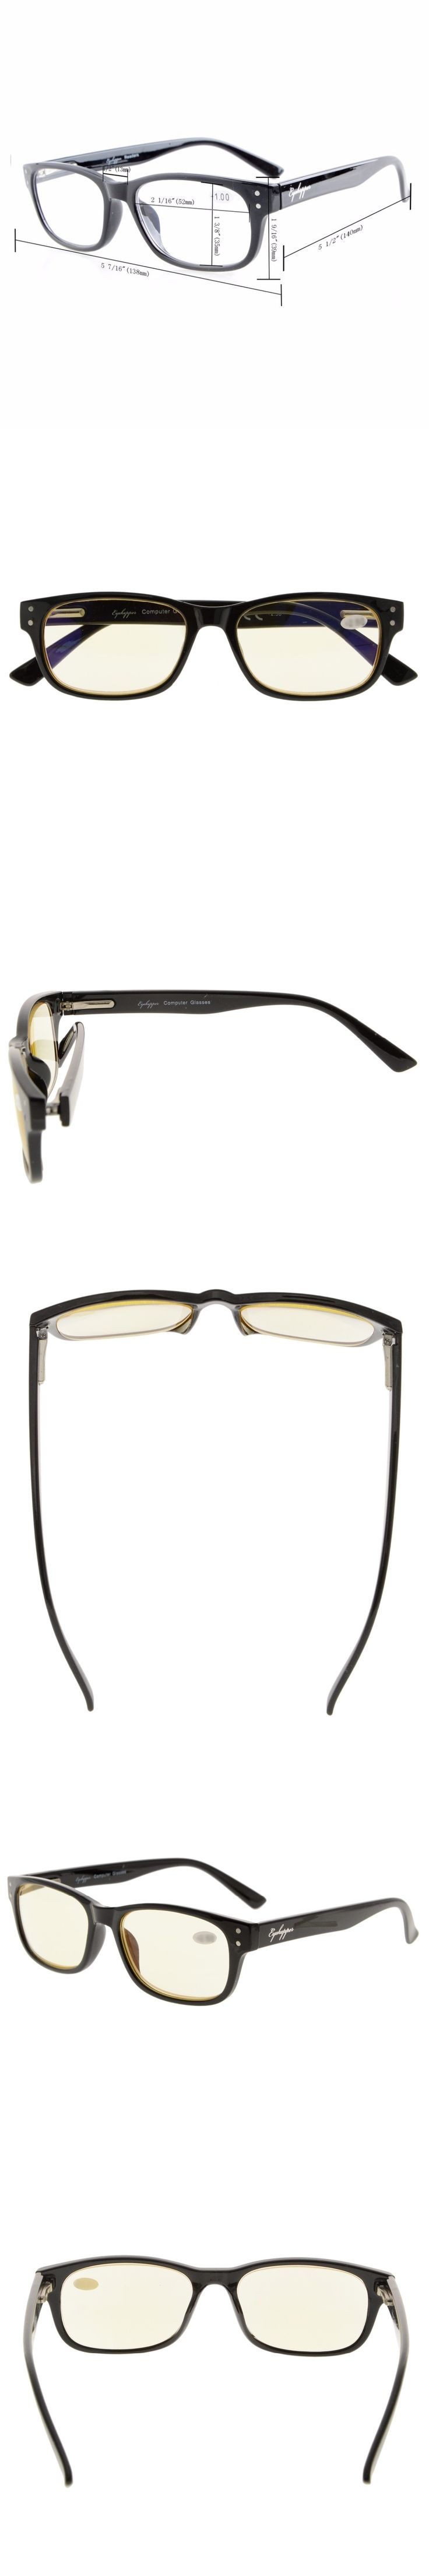 CG094 Eyekepper Spring-Hinges with UV Protection, Anti Blue Rays, Anti Glare and Scratch Resistant Lens Computer Reading Glasses